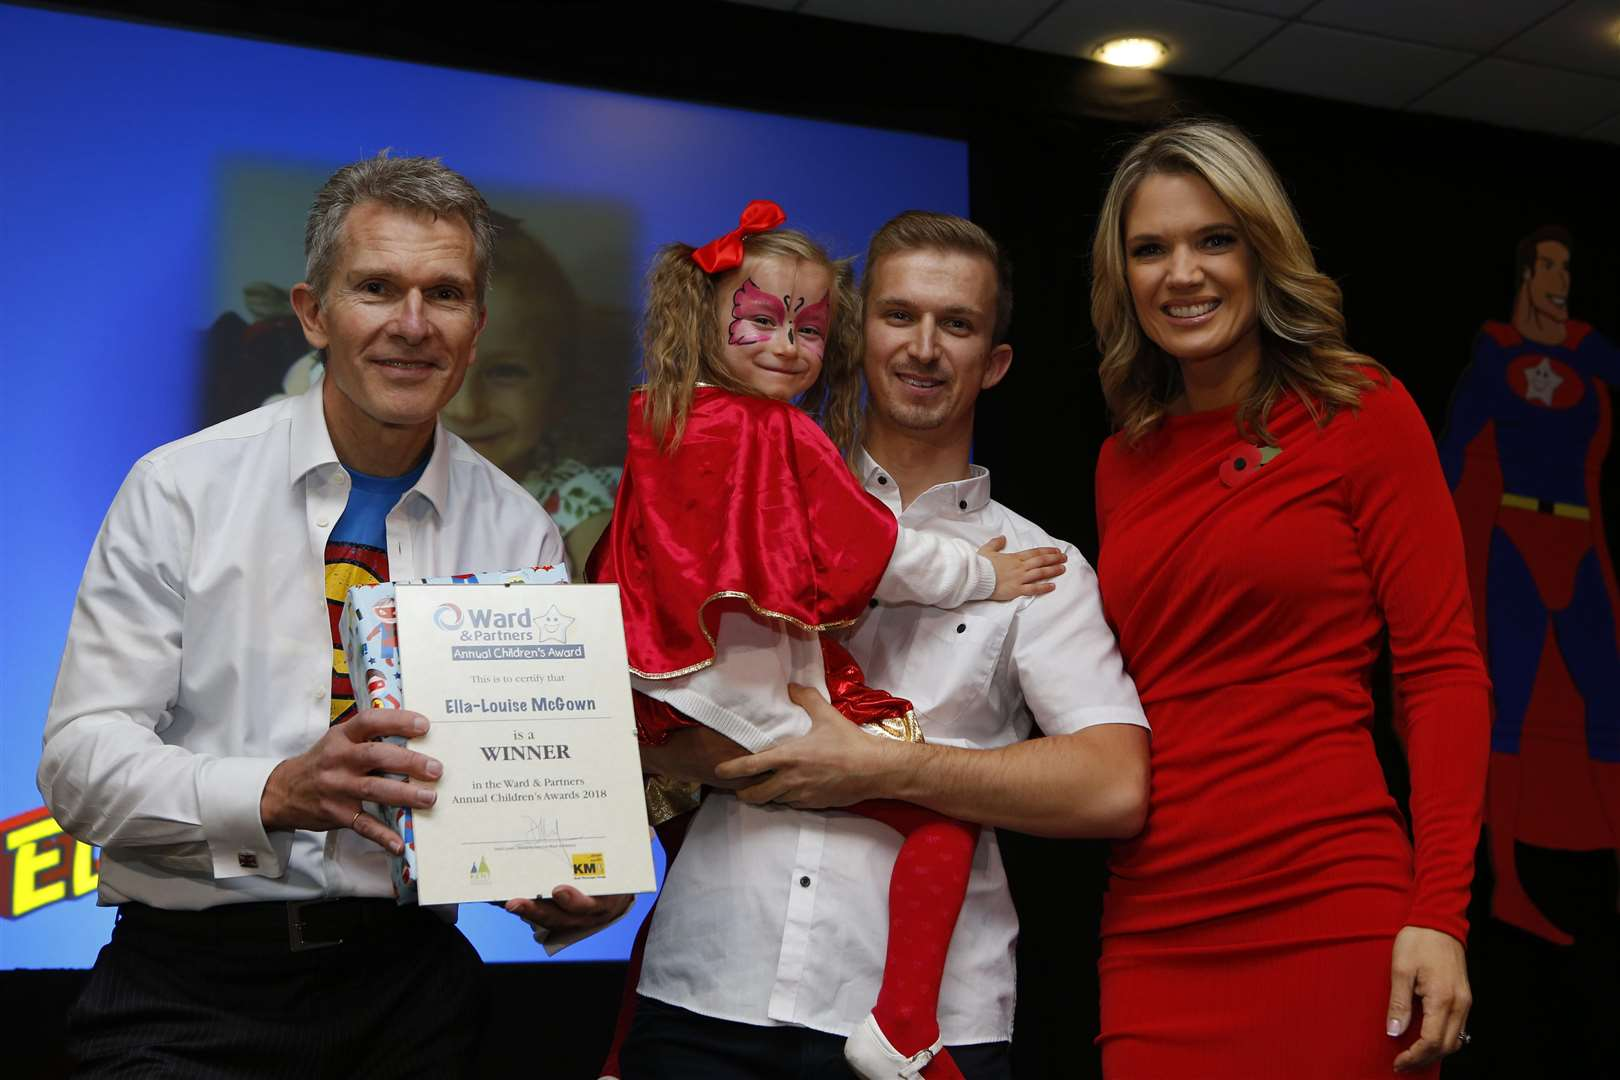 Ella-Louise McGowan, who also won Triumph Over Adversity for children up to 5 years old, with managing director for West Kent Lee Crane (Left) and Charlotte Hawkins